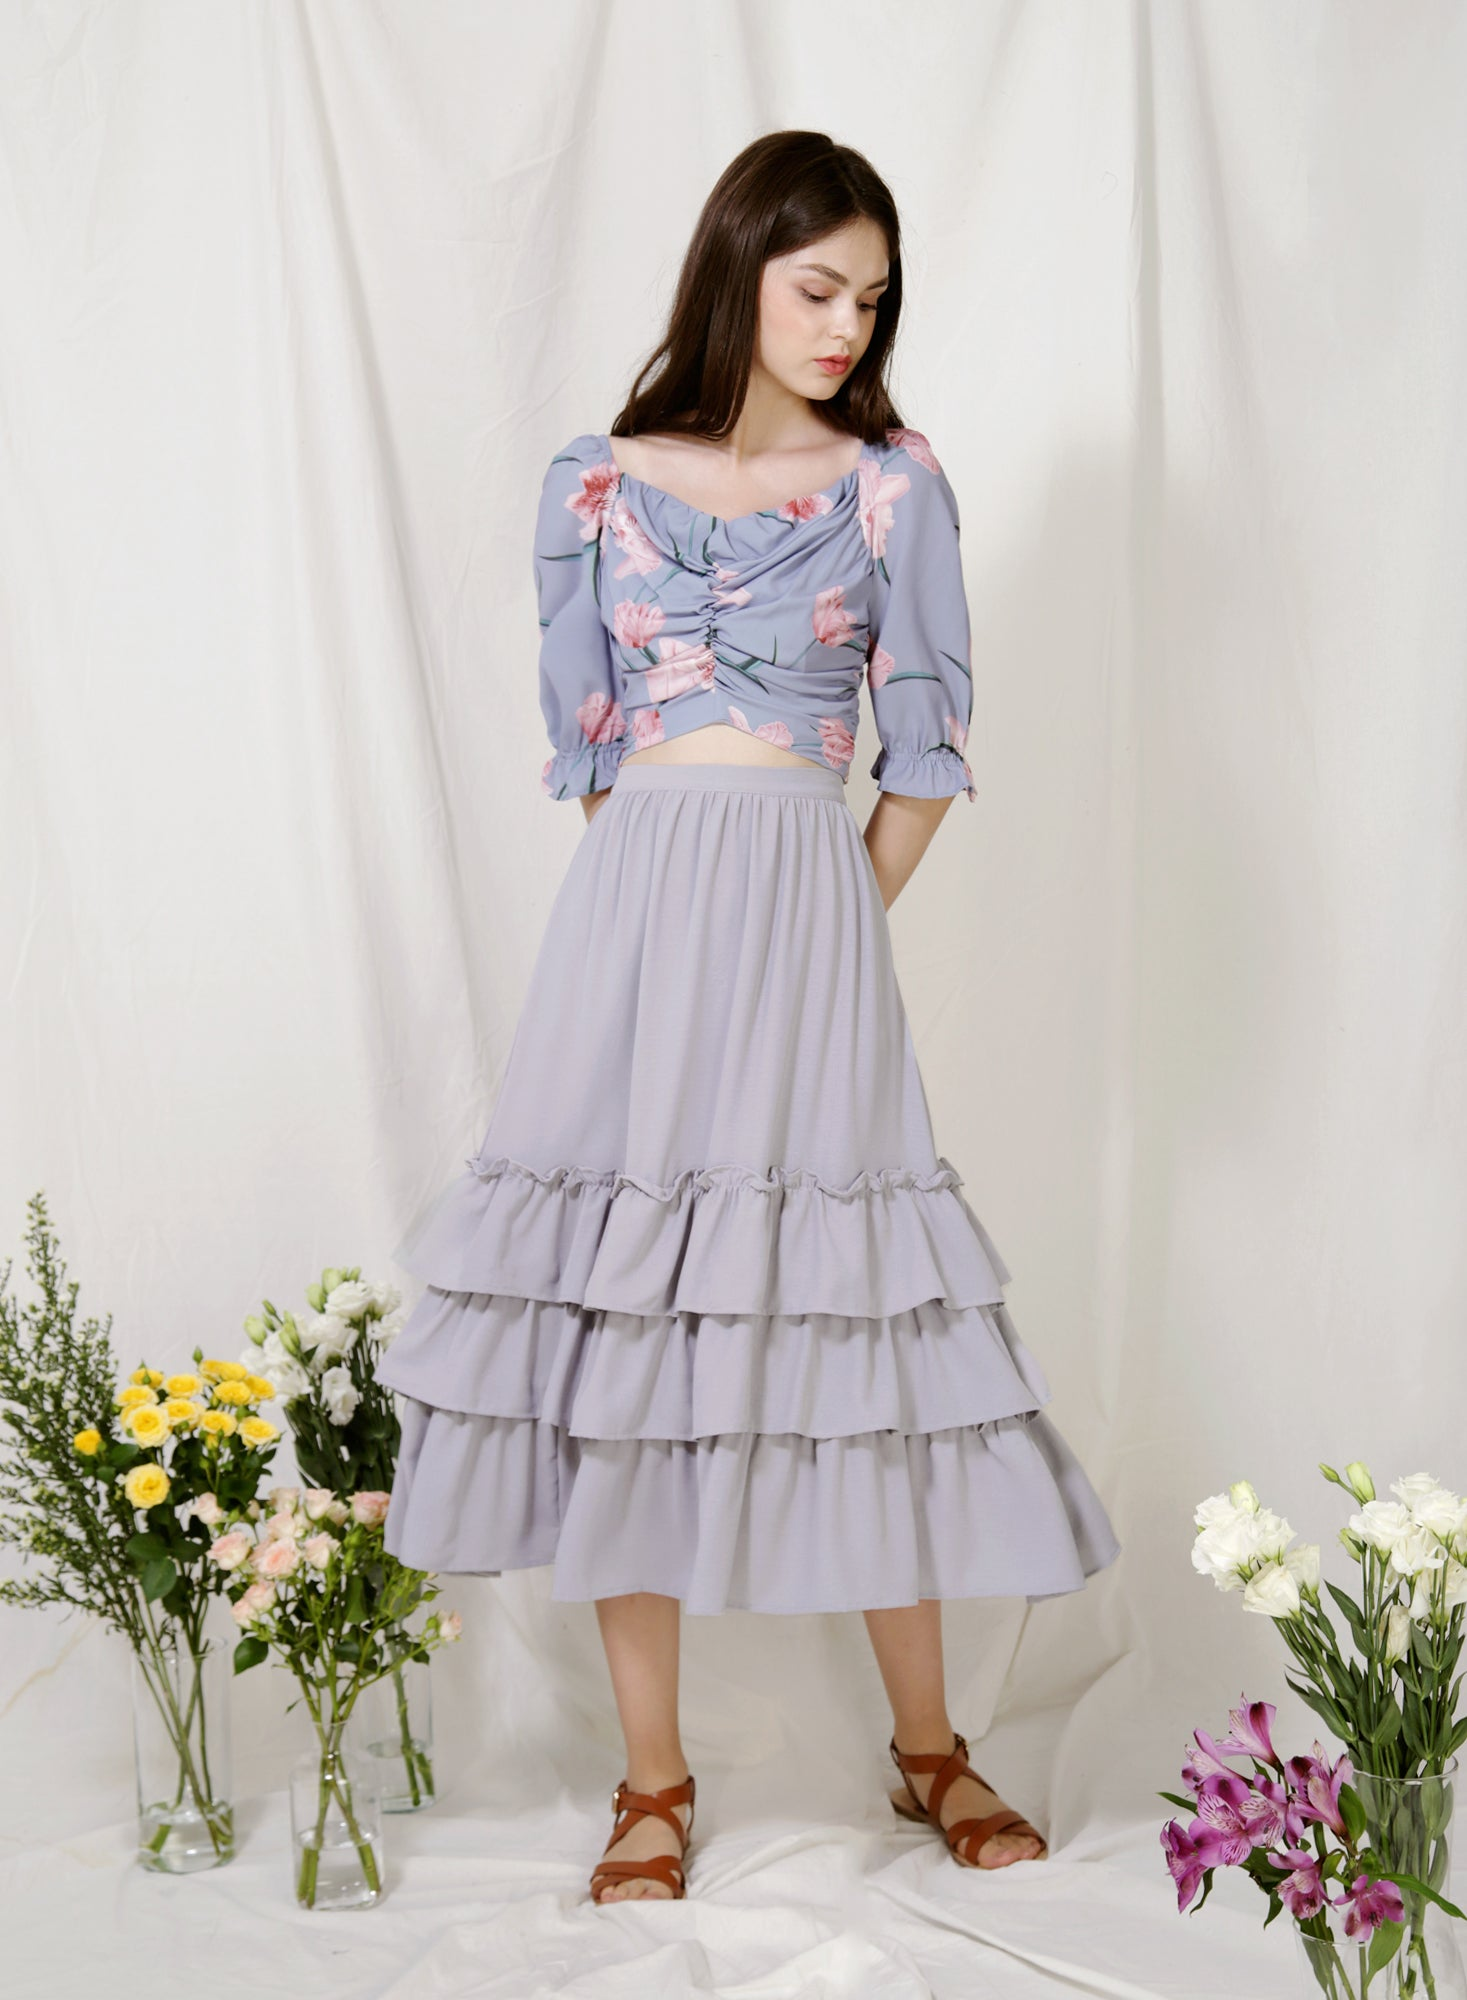 Charmed Ruffle Tiers Skirt (Lilac Grey) at $ 39.50 only sold at And Well Dressed Online Fashion Store Singapore